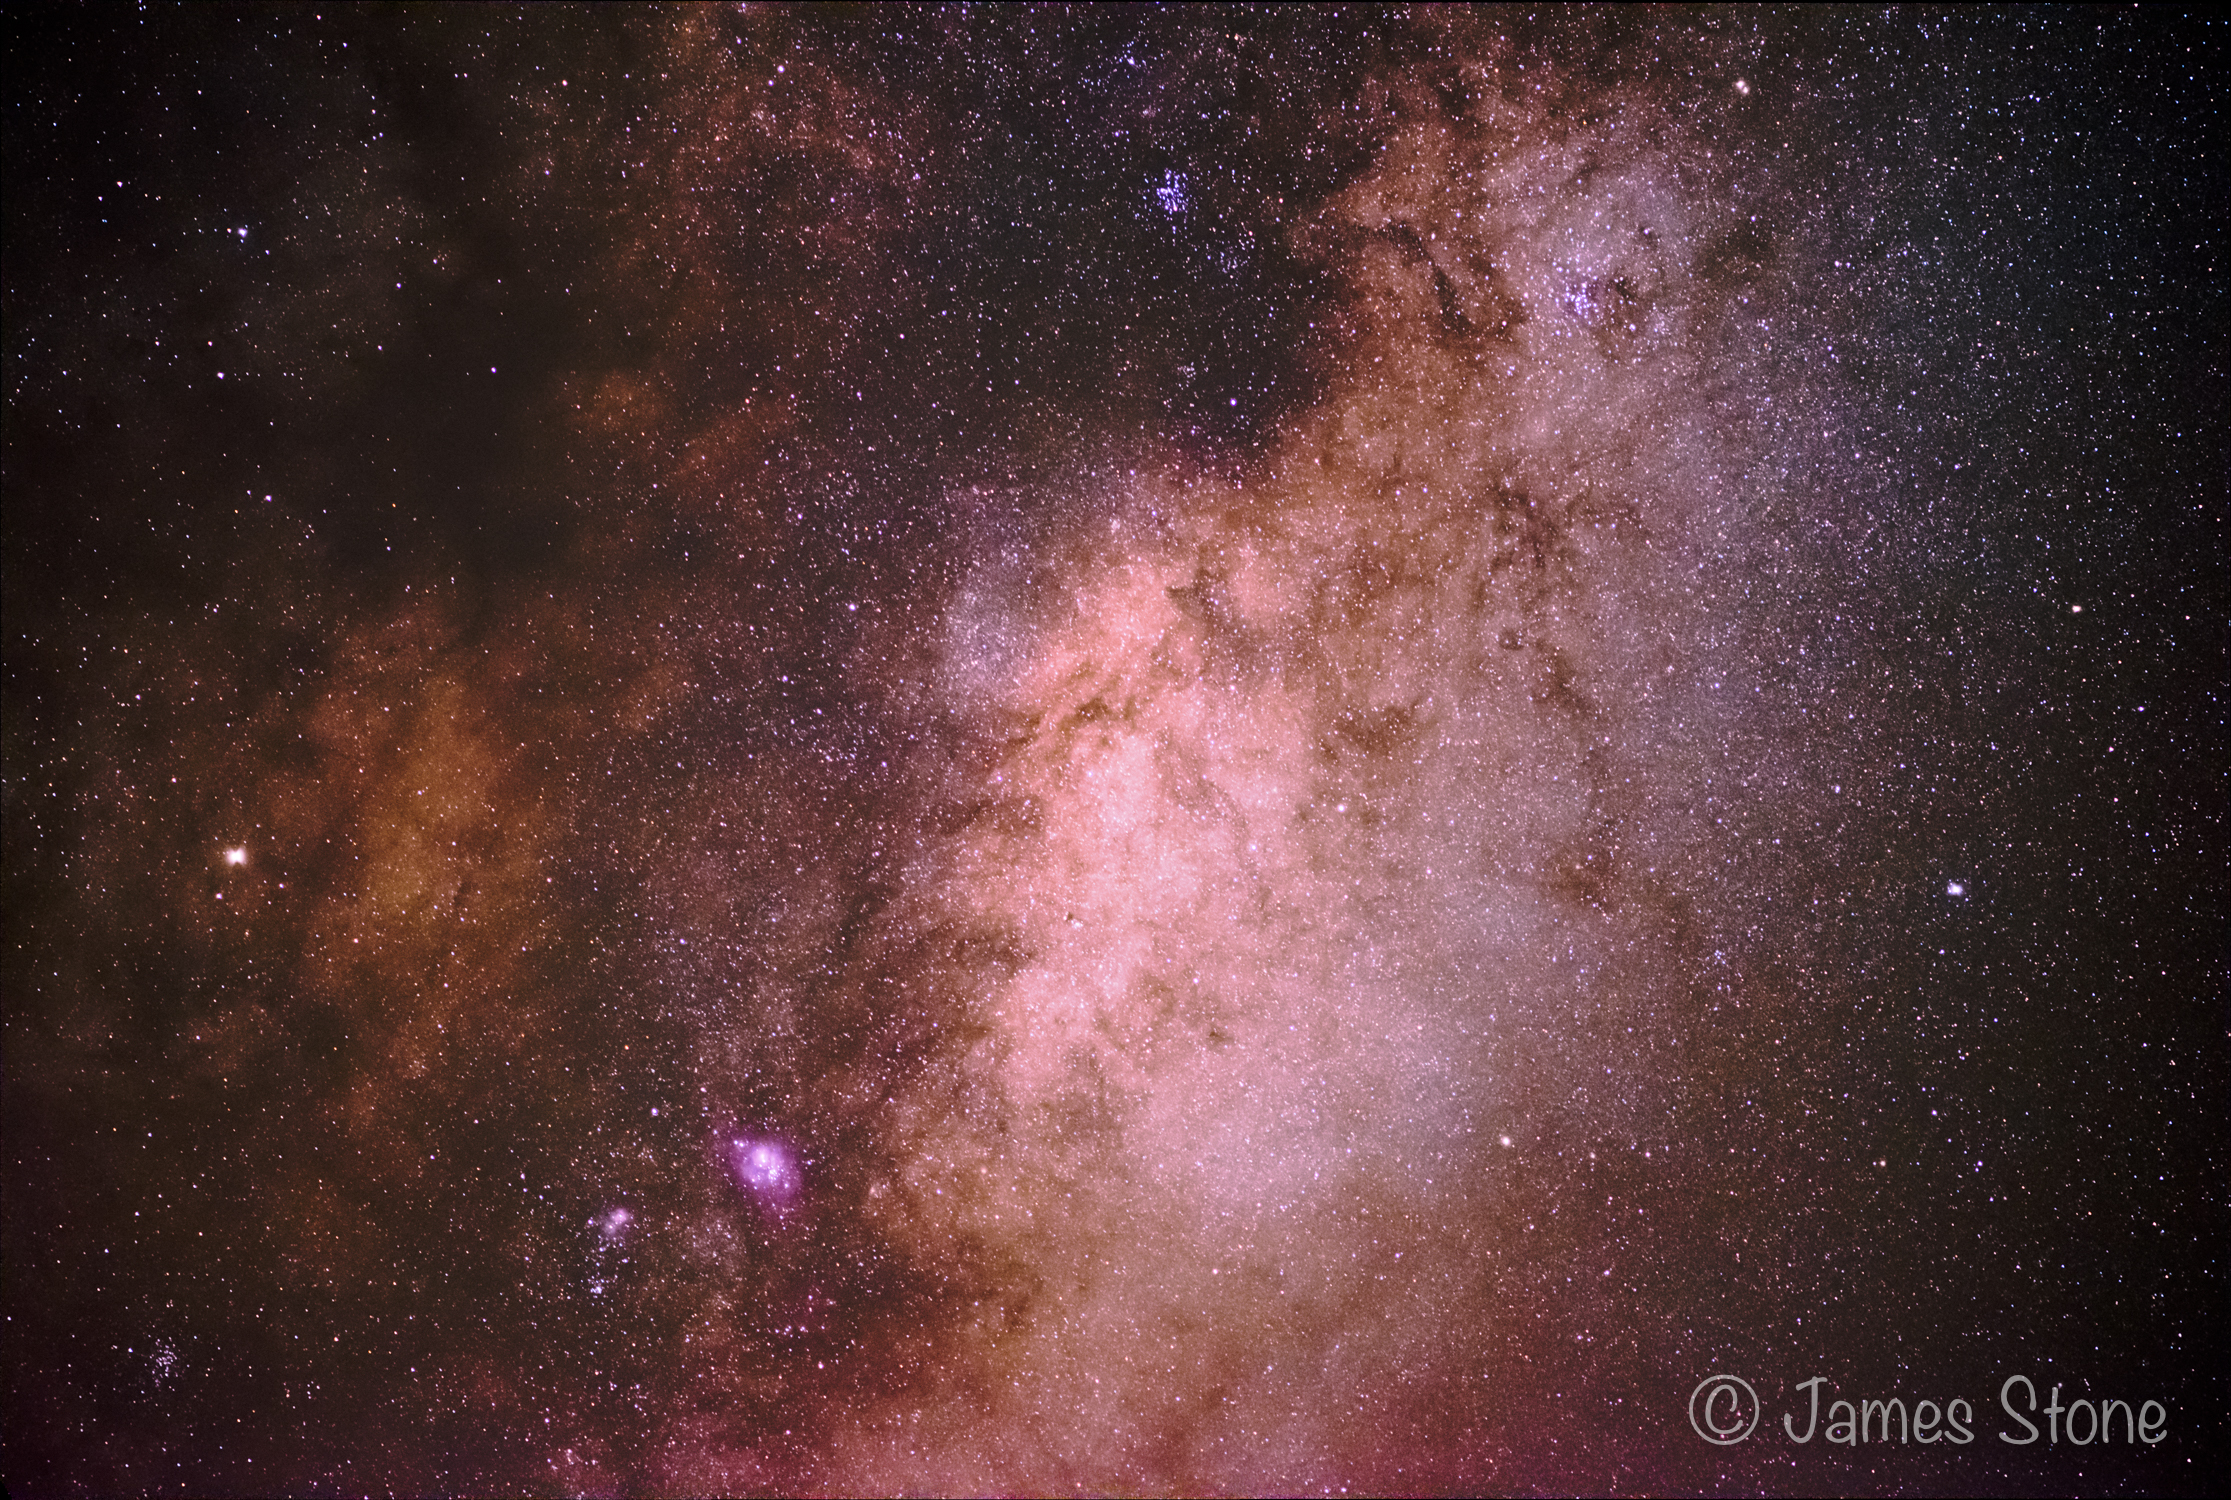 Saturn in the Galactic Core